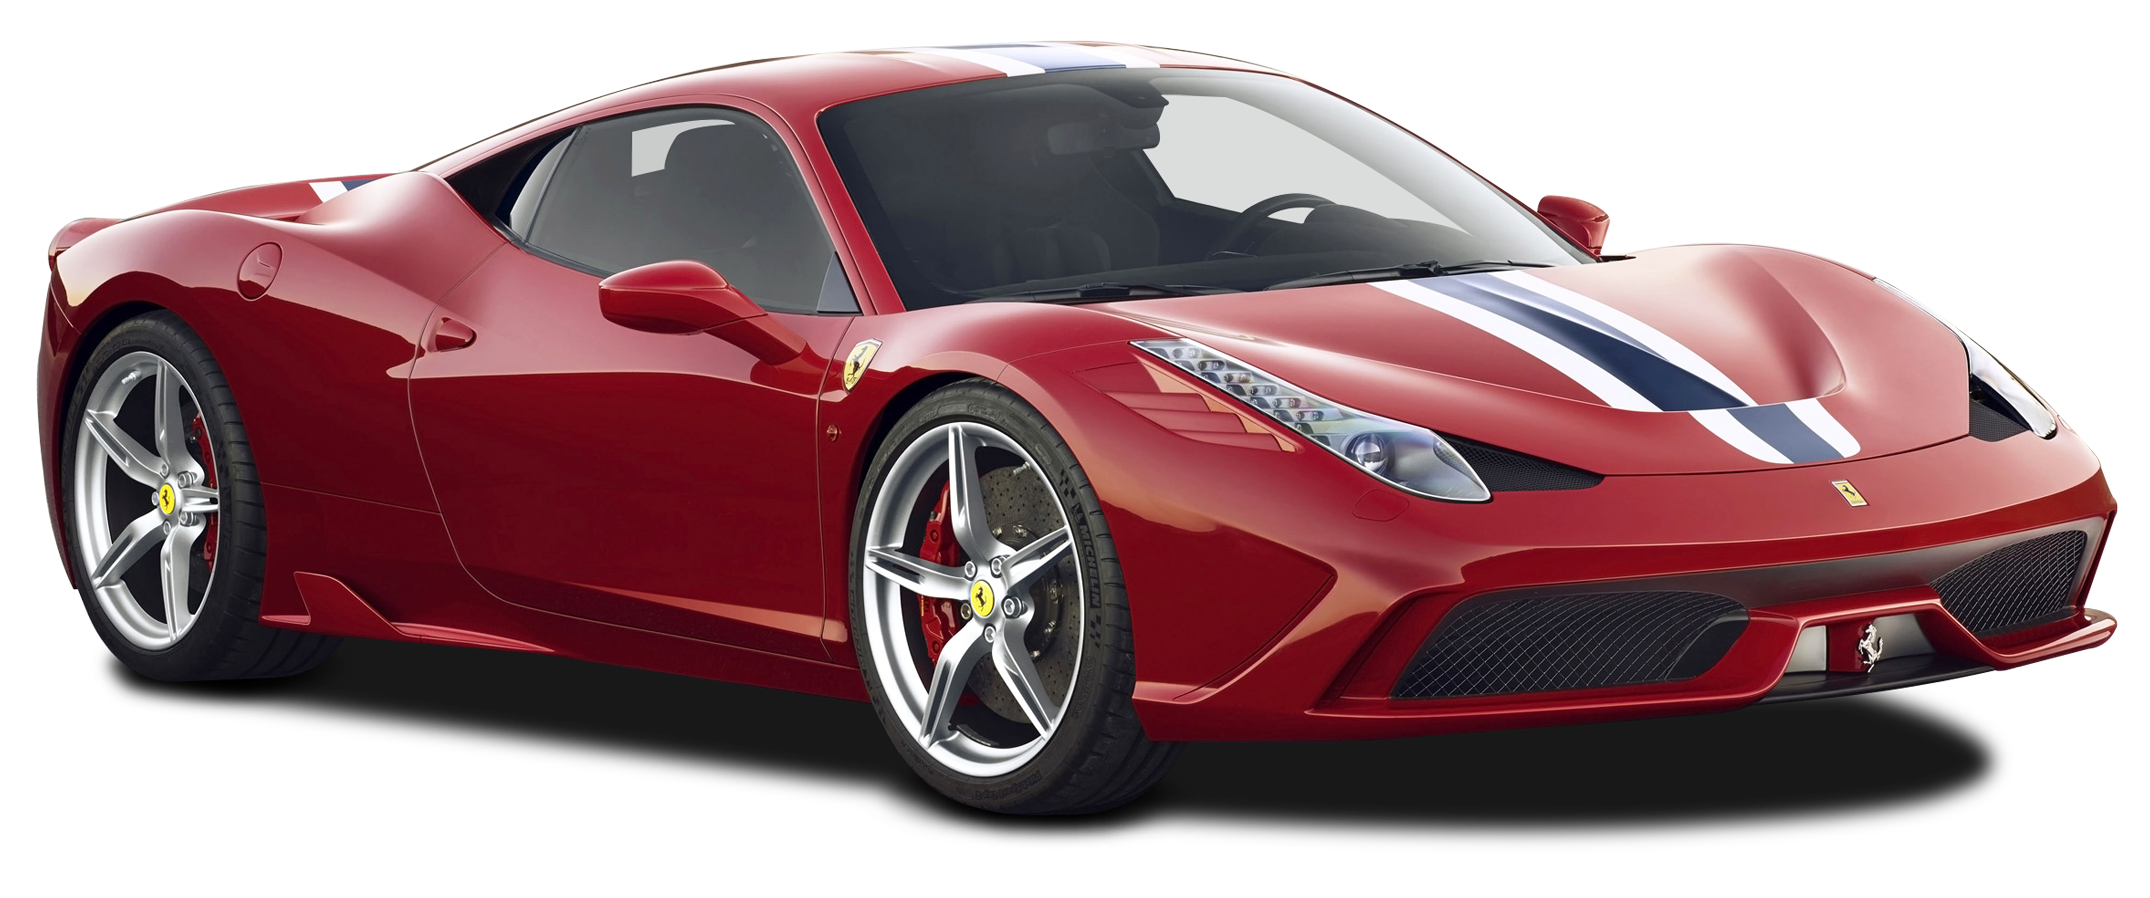 red ferrari 458 speciale car png image purepng free. Black Bedroom Furniture Sets. Home Design Ideas